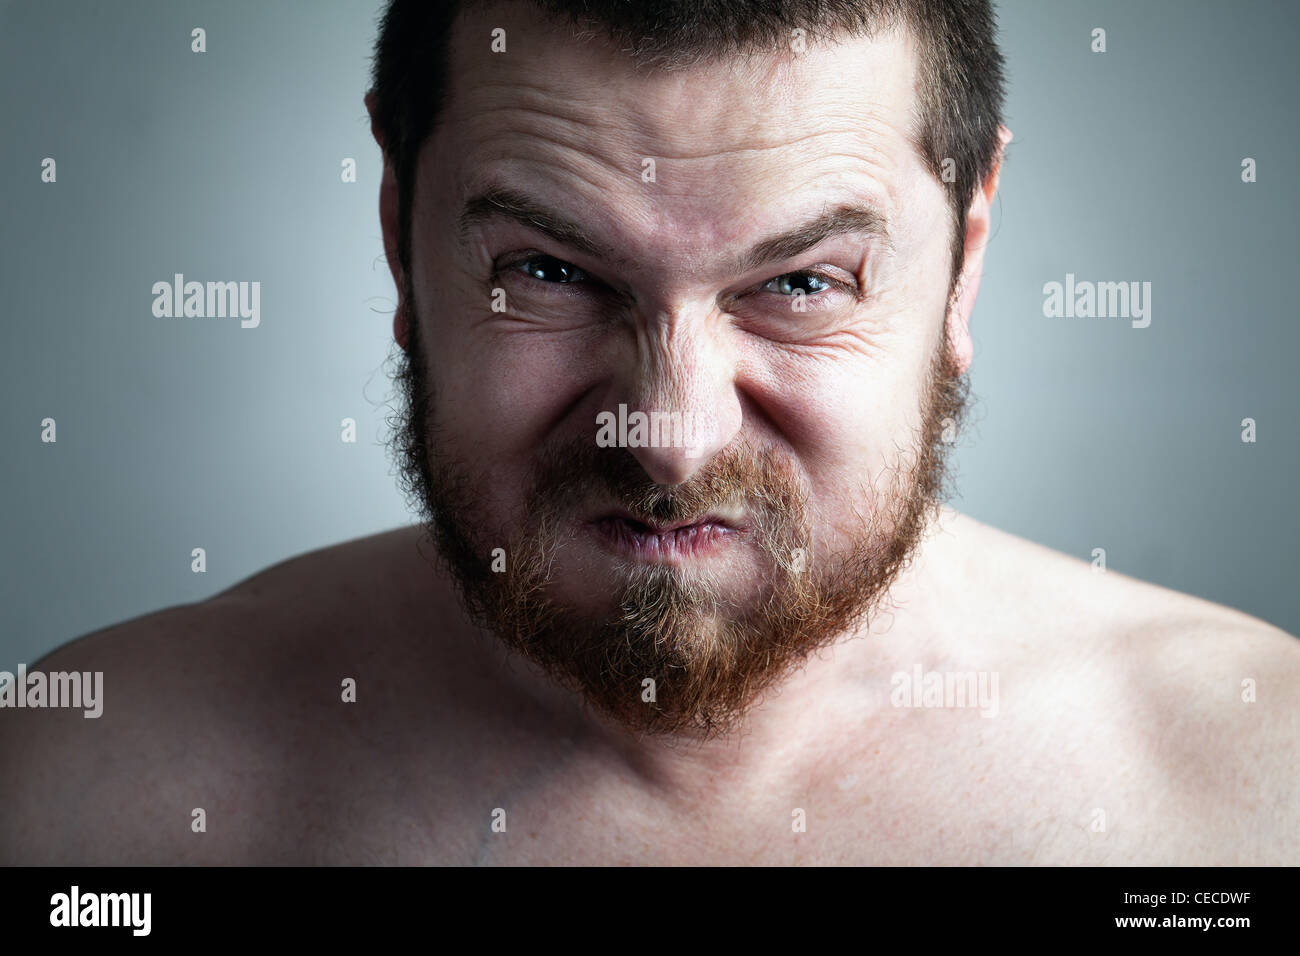 Stress or constipation concept - man with funny grimace - Stock Image